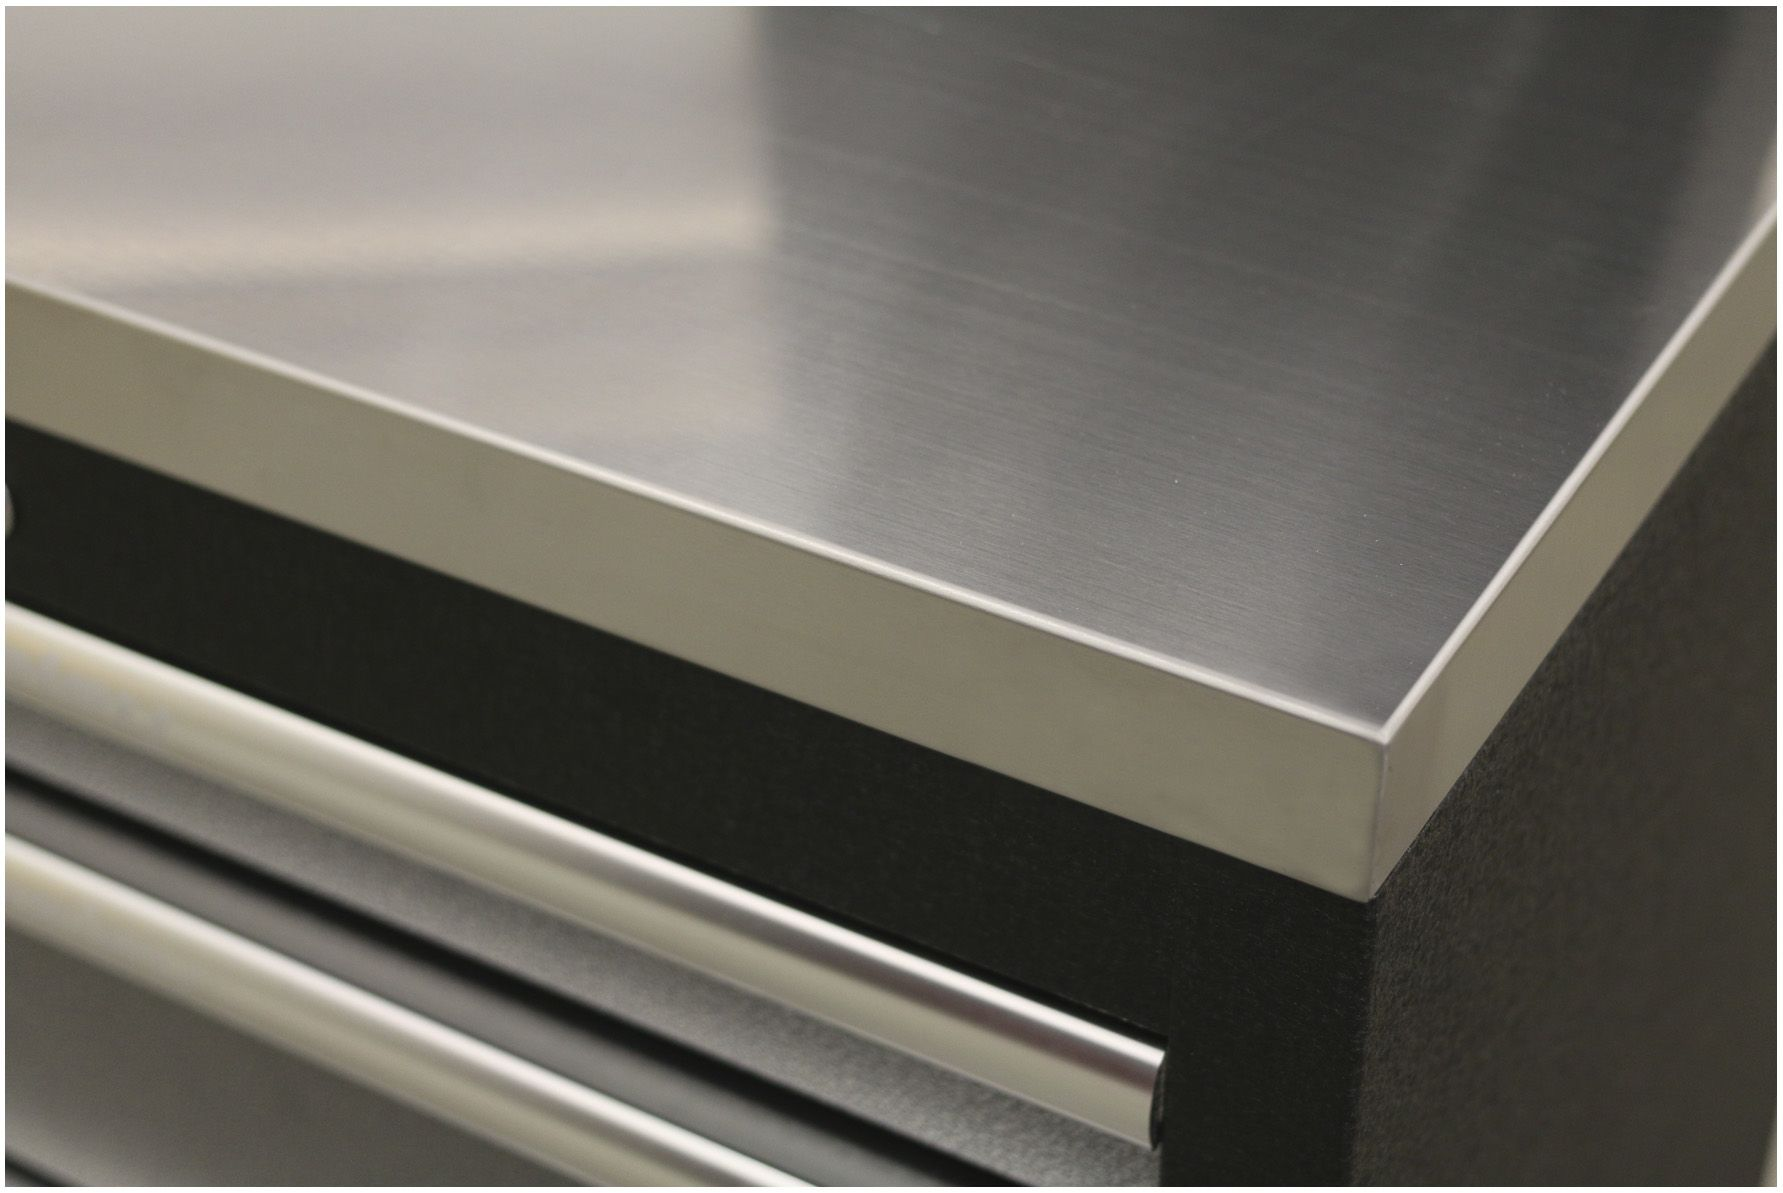 Sealey Superline Pro Stainless Steel Worktop 1360mm